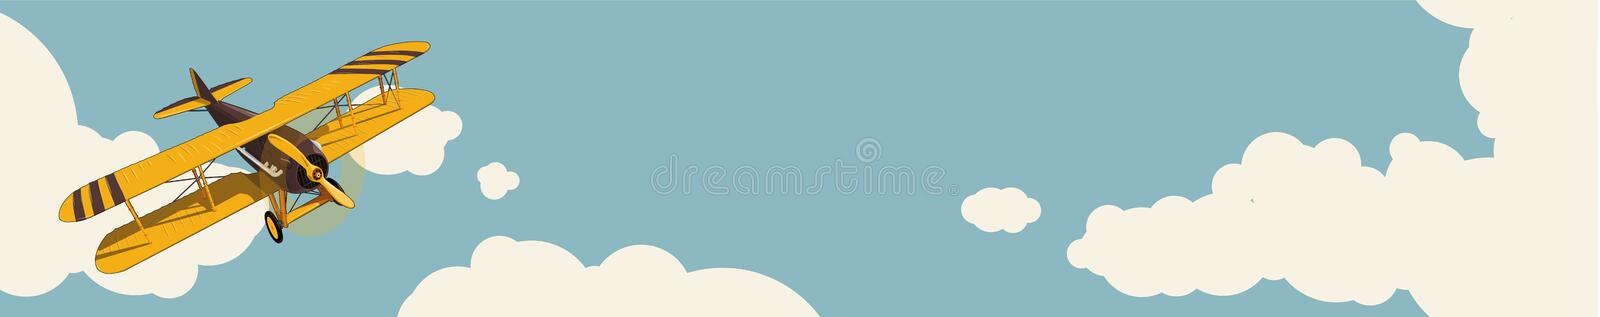 Graphic background. Yellow plane flying over sky with clouds in vintage color stylization. Horizontal web banner layout. royalty free illustration